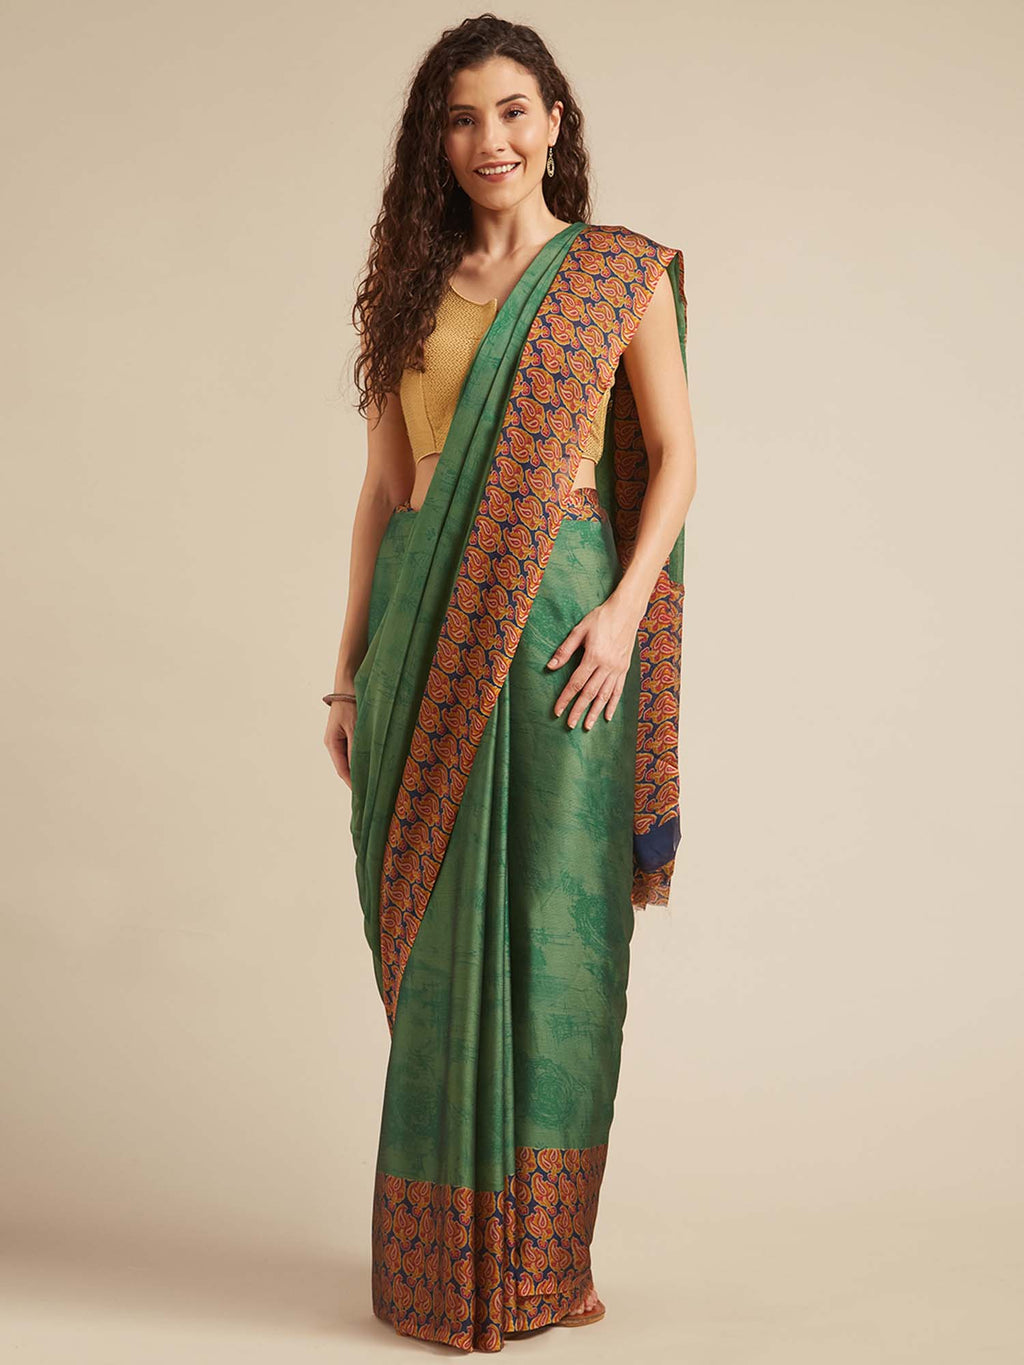 Navy Blue and Green Poly Crepe Traditional Motif Saree - Riviera Closet